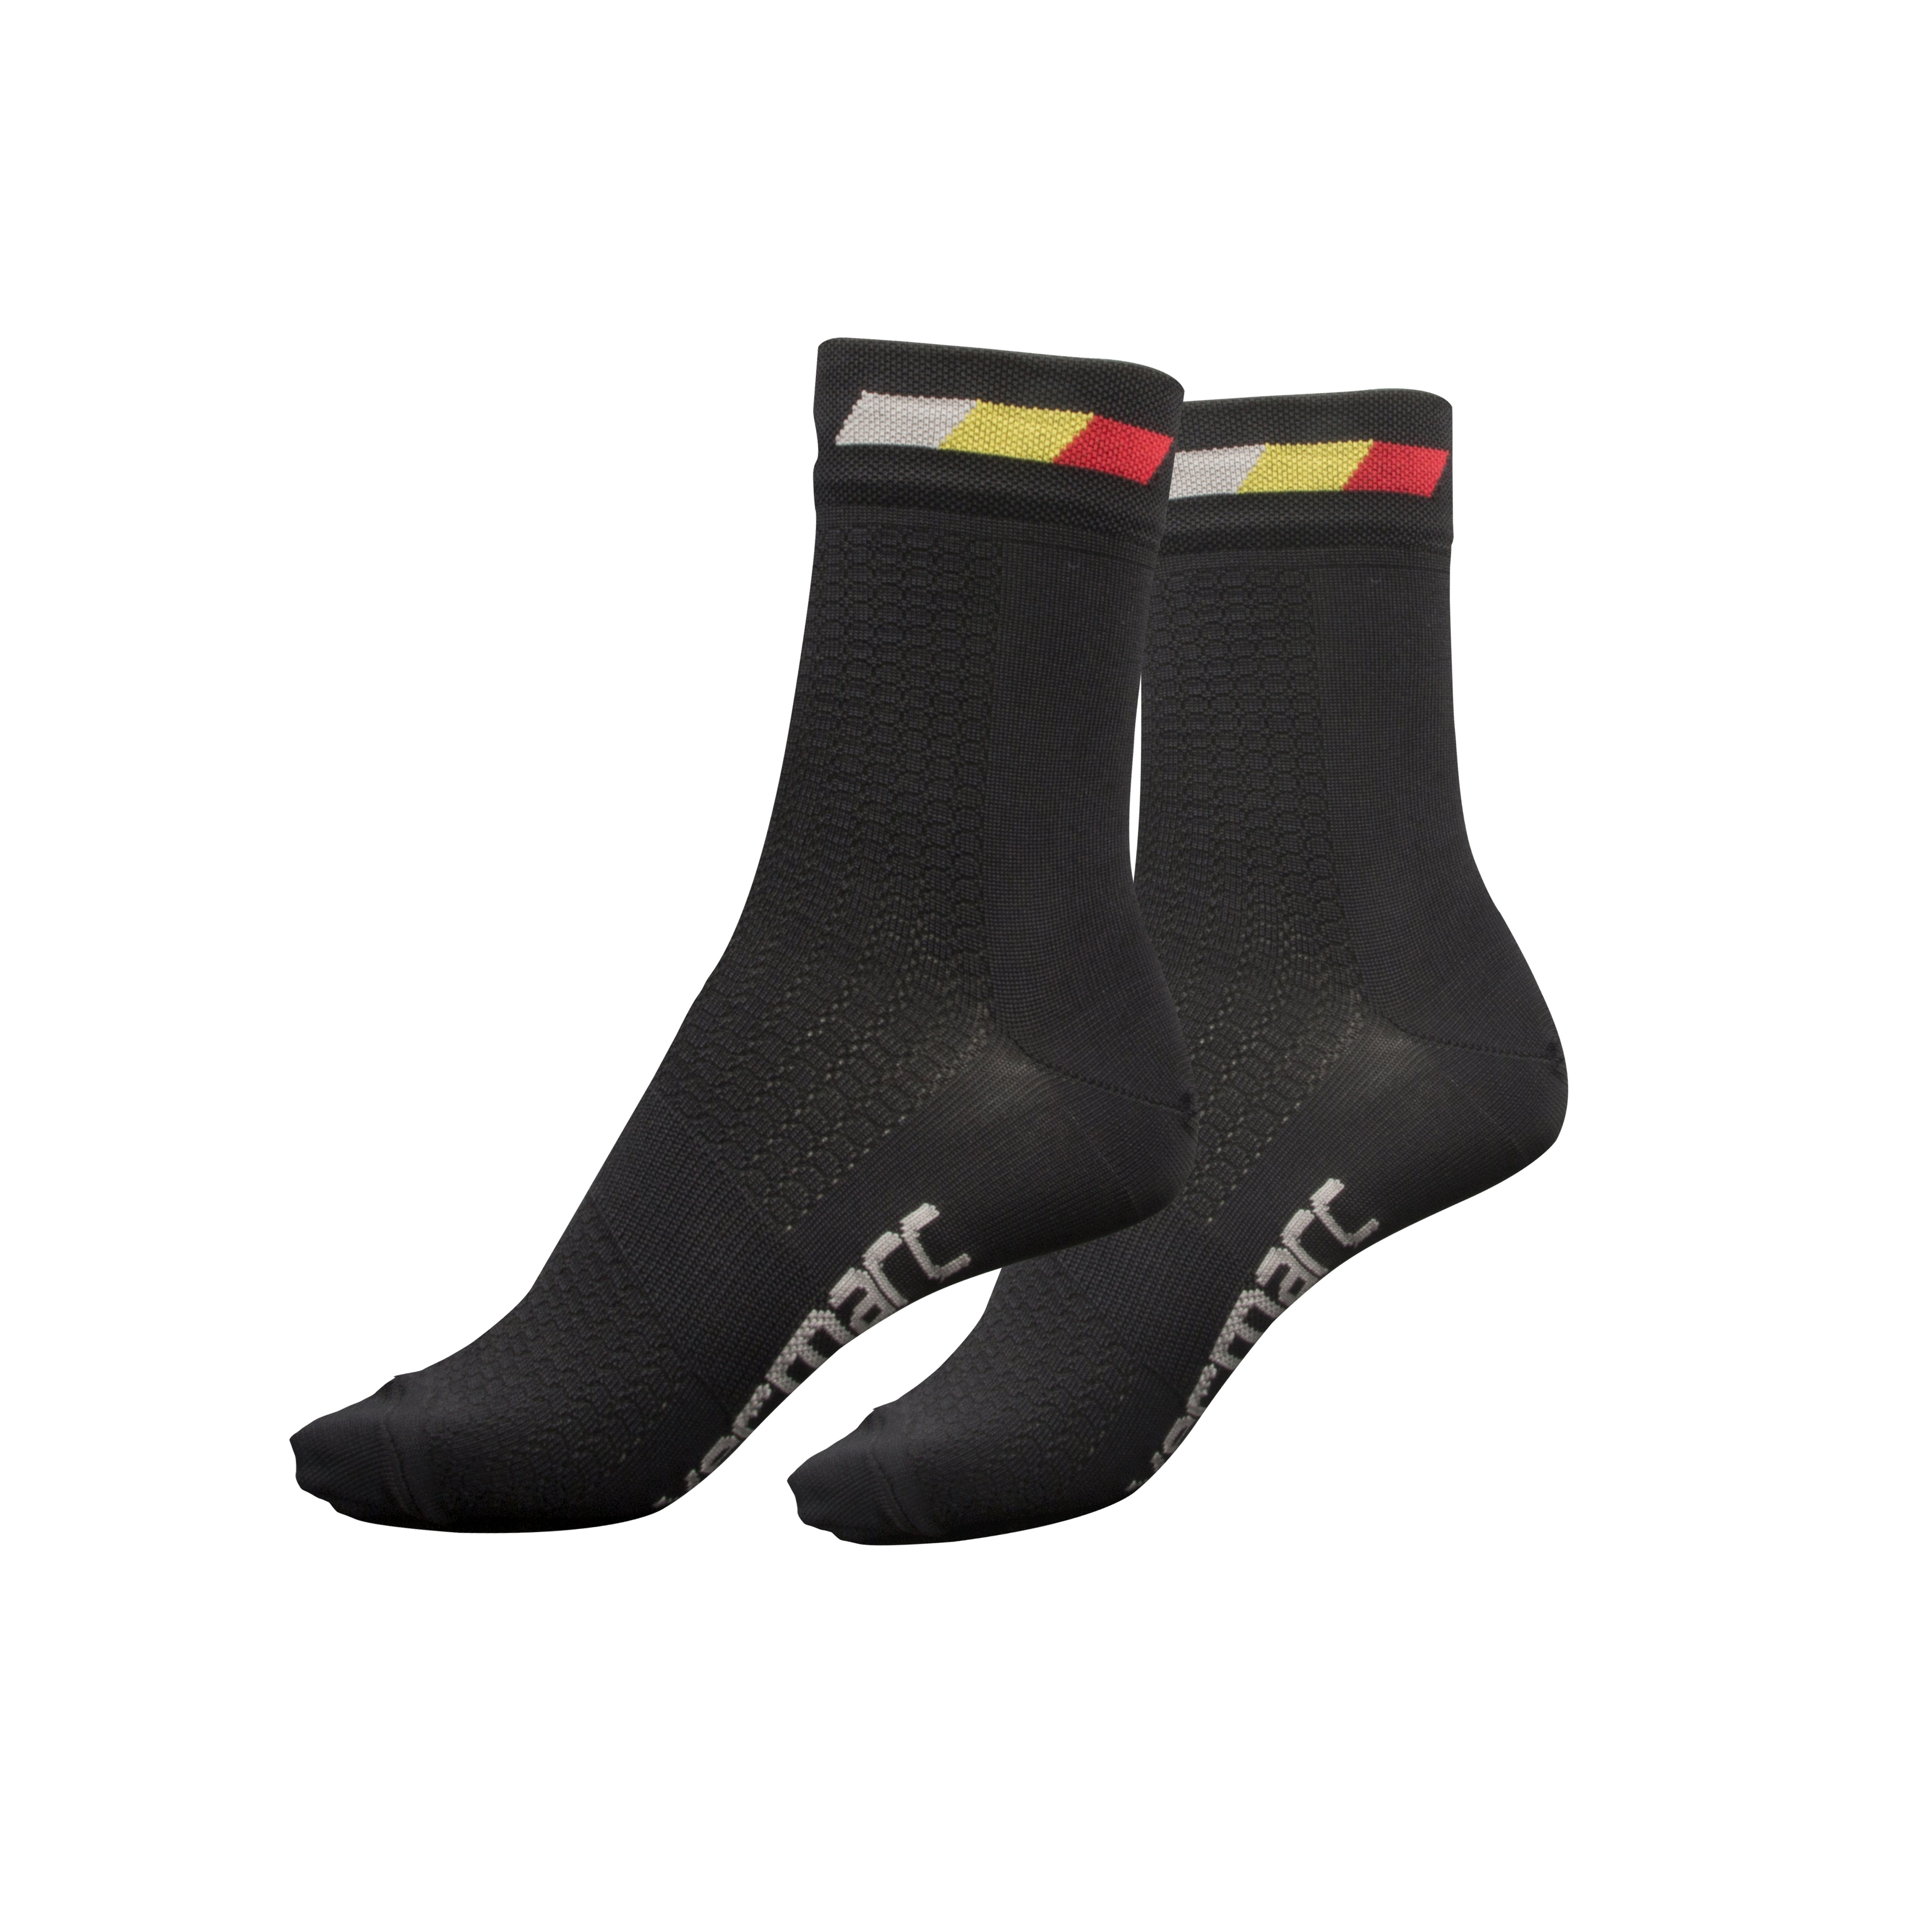 Belgica Chaussettes Skinlife